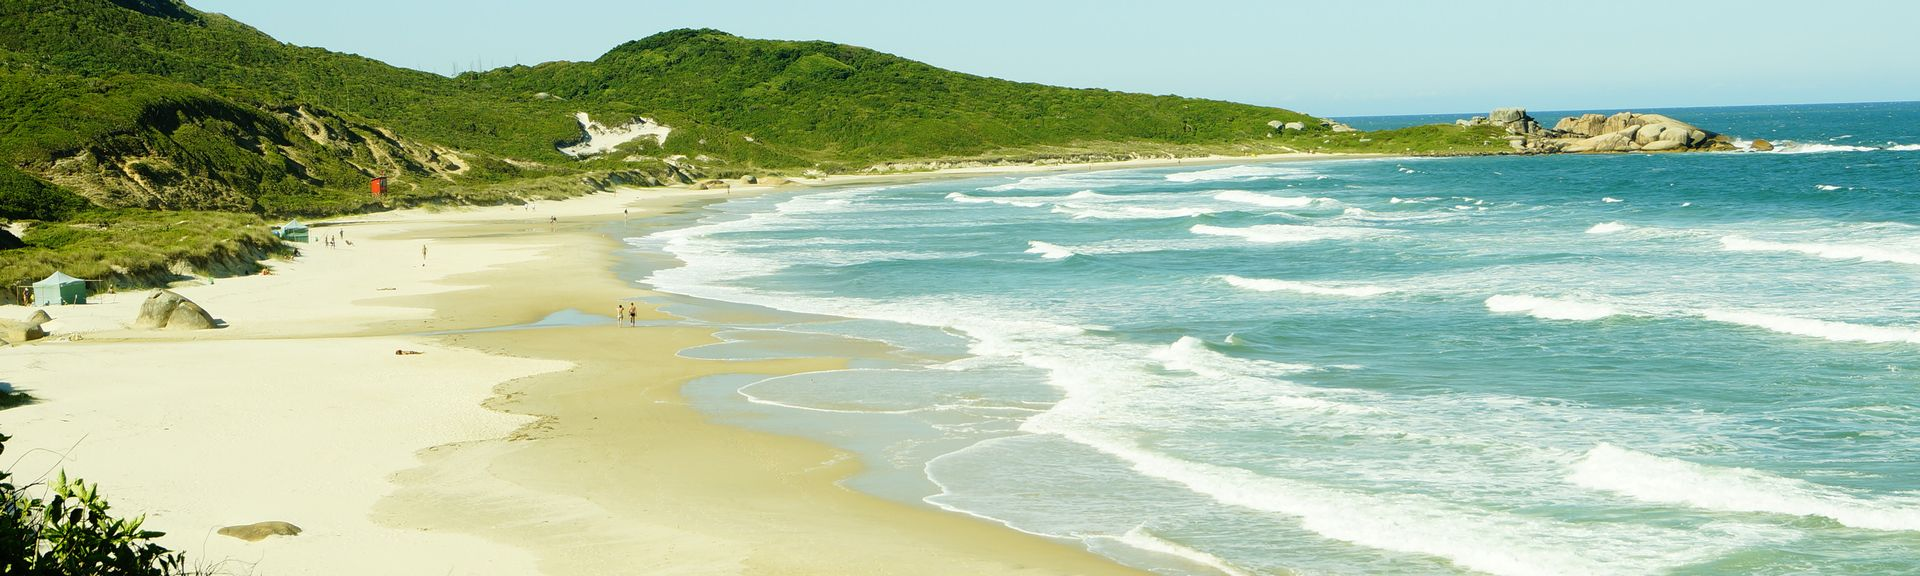 Mole Beach, Florianopolis, South Region, Brazil